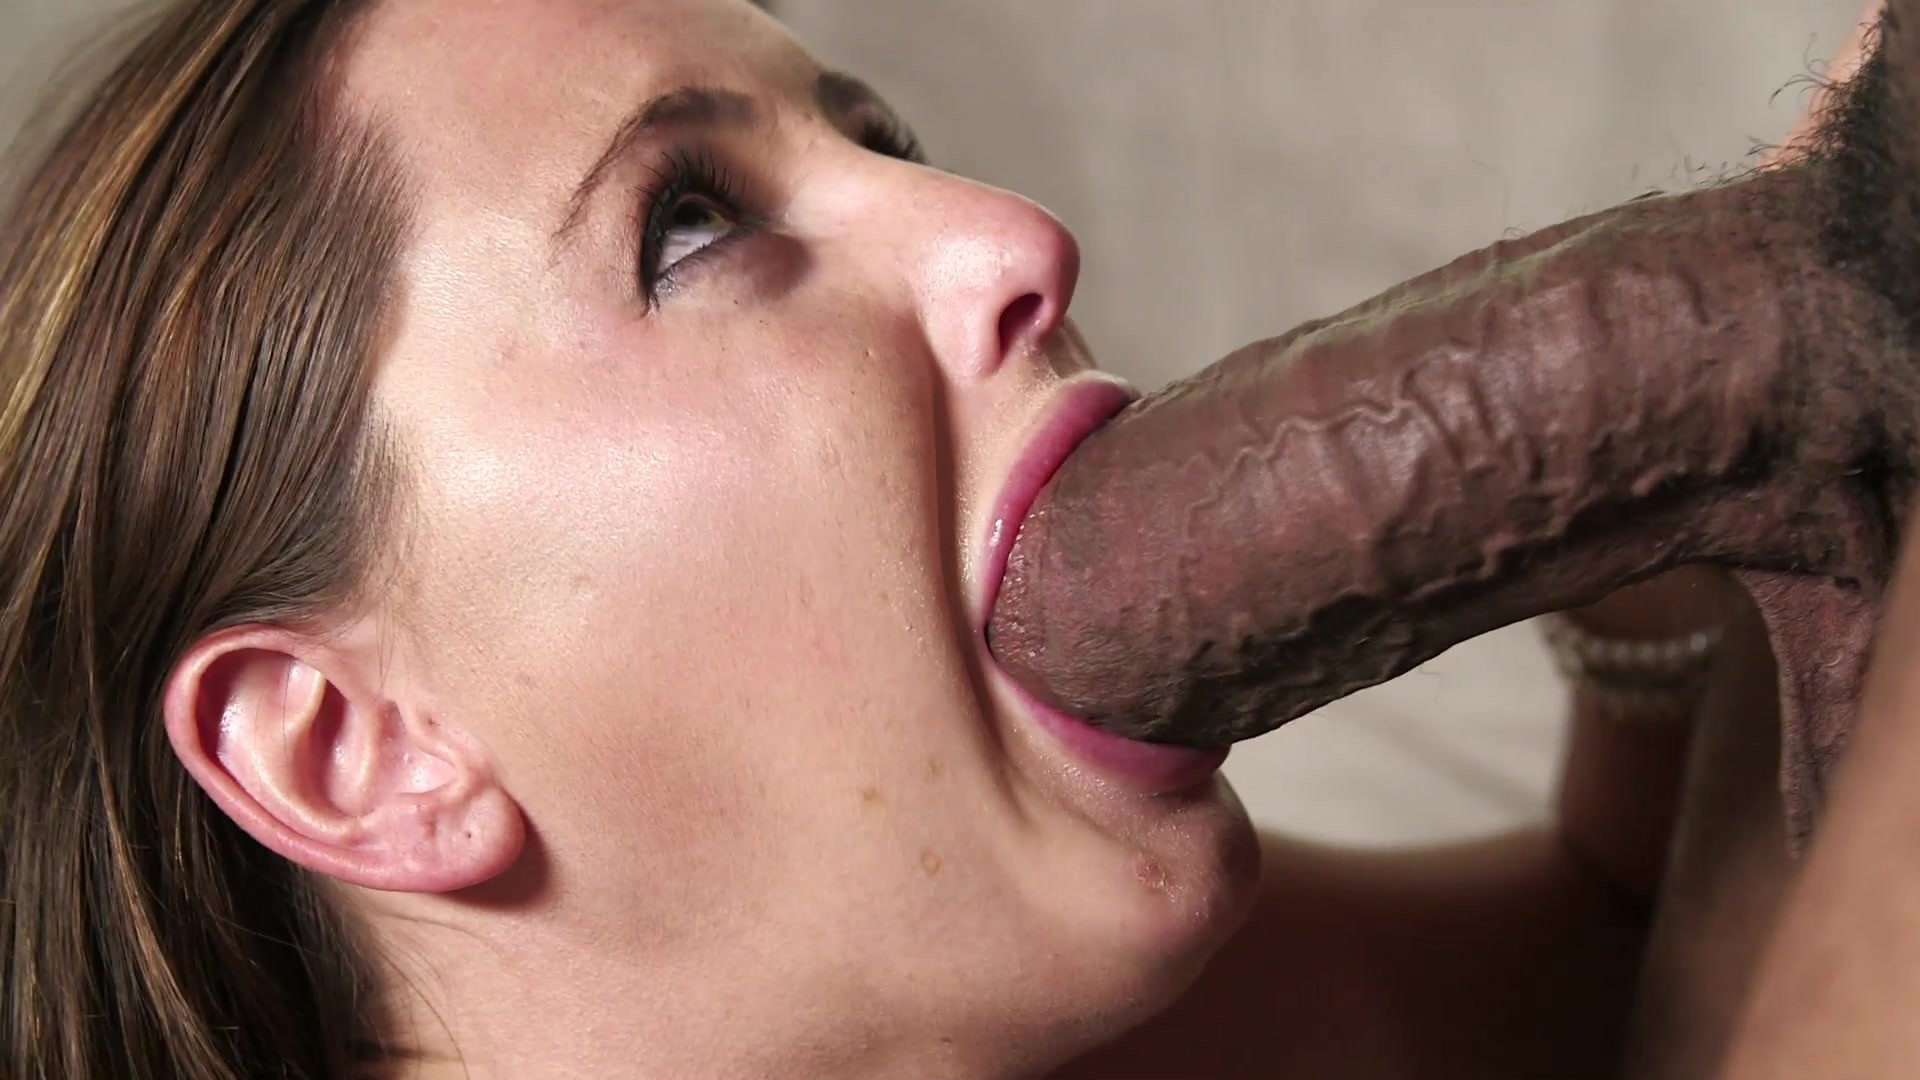 Dashing Blonde Mom With Big Tits Enjoys Sloppy Oral Sex And Gets Fucked Hardcore